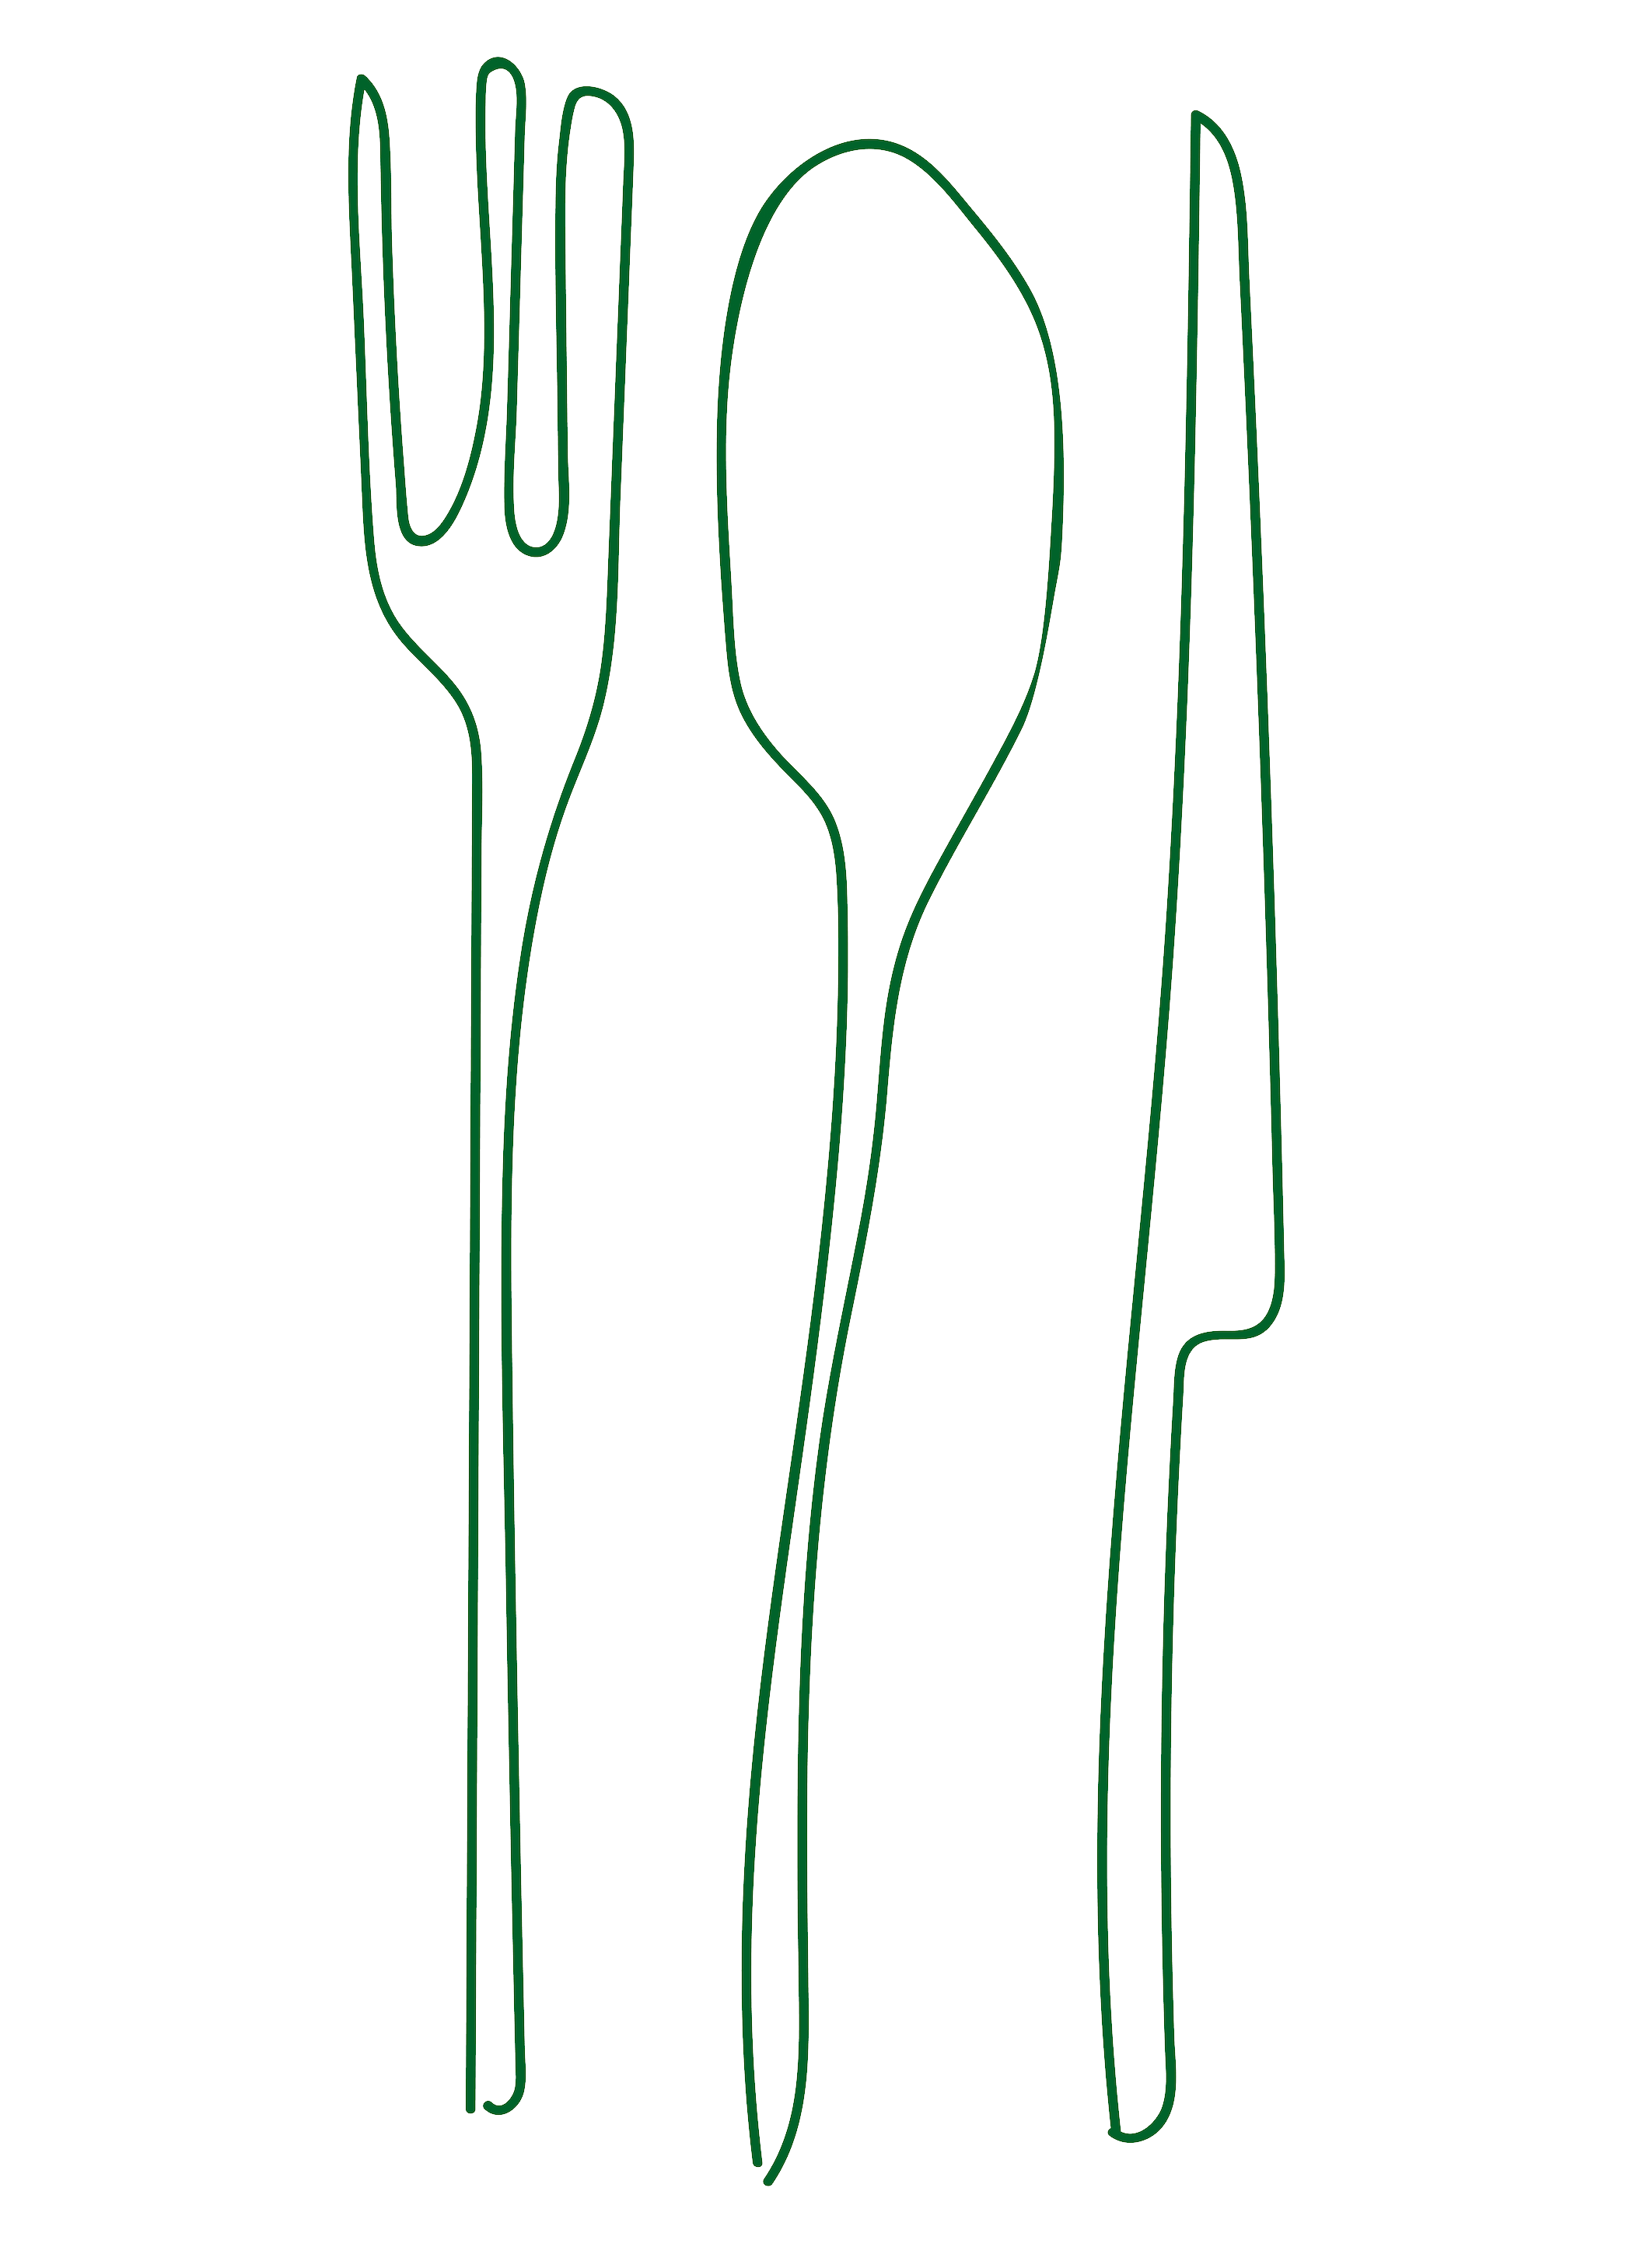 fork_2.png